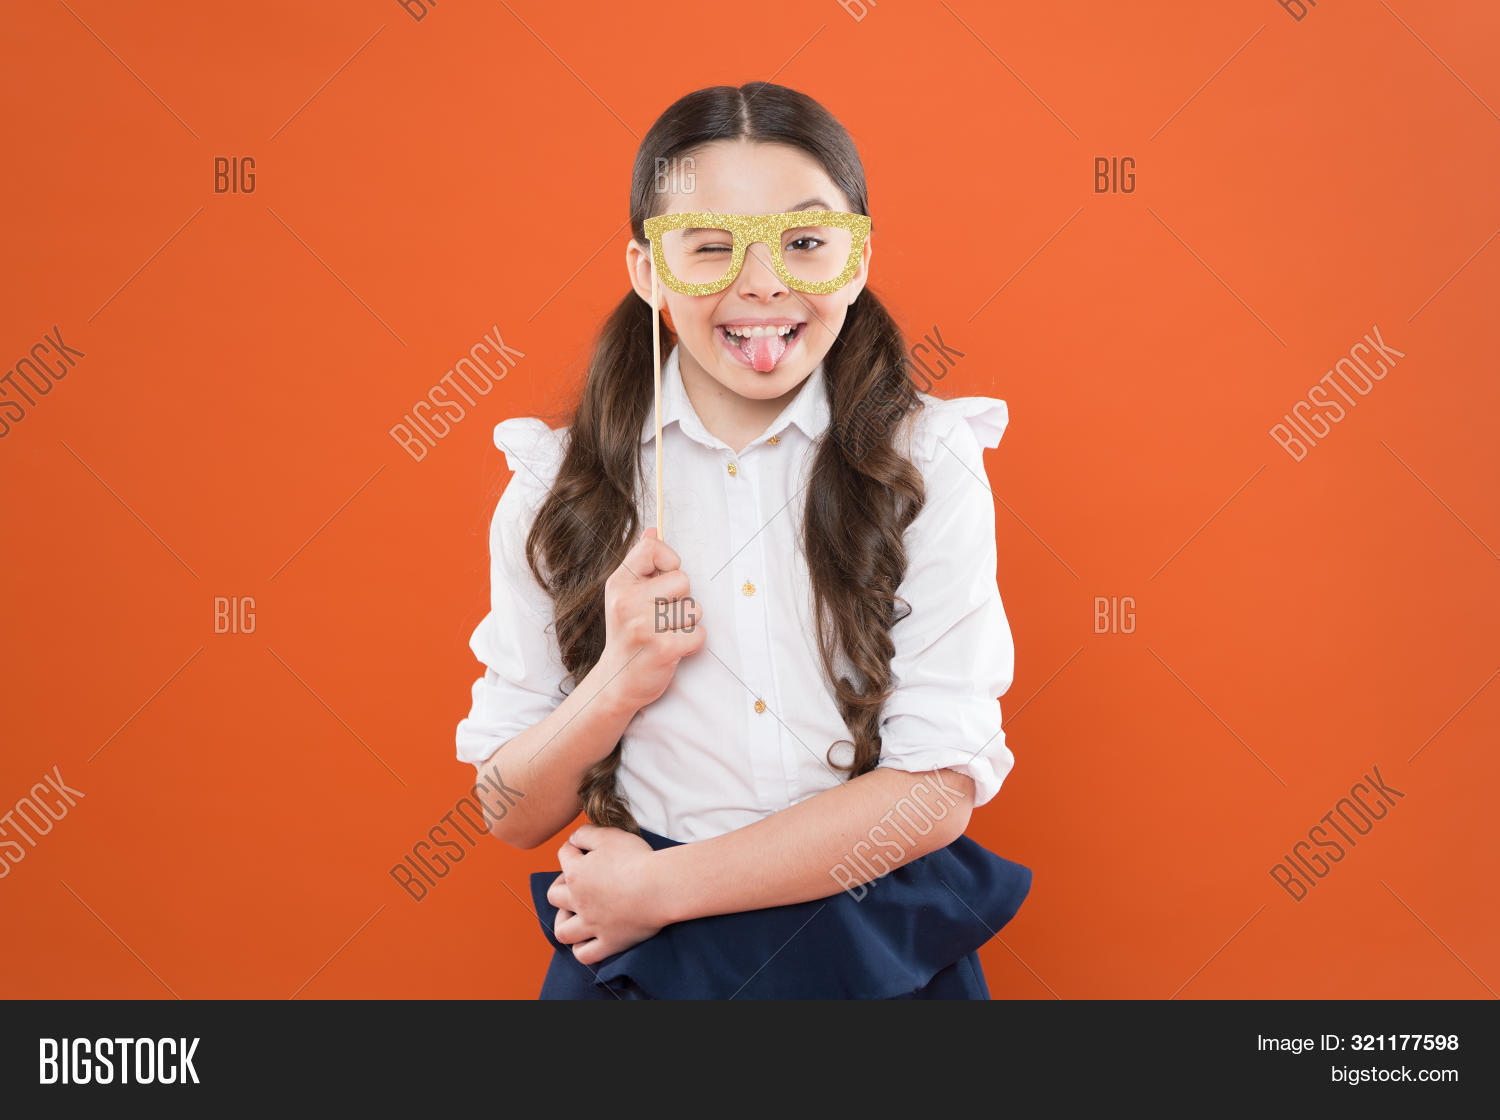 attention,background,being,booth,cheerful,child,childhood,clever,competence,concentration,concept,cute,does,esprit,eye,eyeglasses,eyewear,fashion,fashionable,focus,genius,girl,glasses,hair,intellect,intelligence,intelligent,it,joy,kid,knowledge,little,look,mean,orange,party,photo,props,school,schoolgirl,small,smart,smartness,style,through,wearing,what